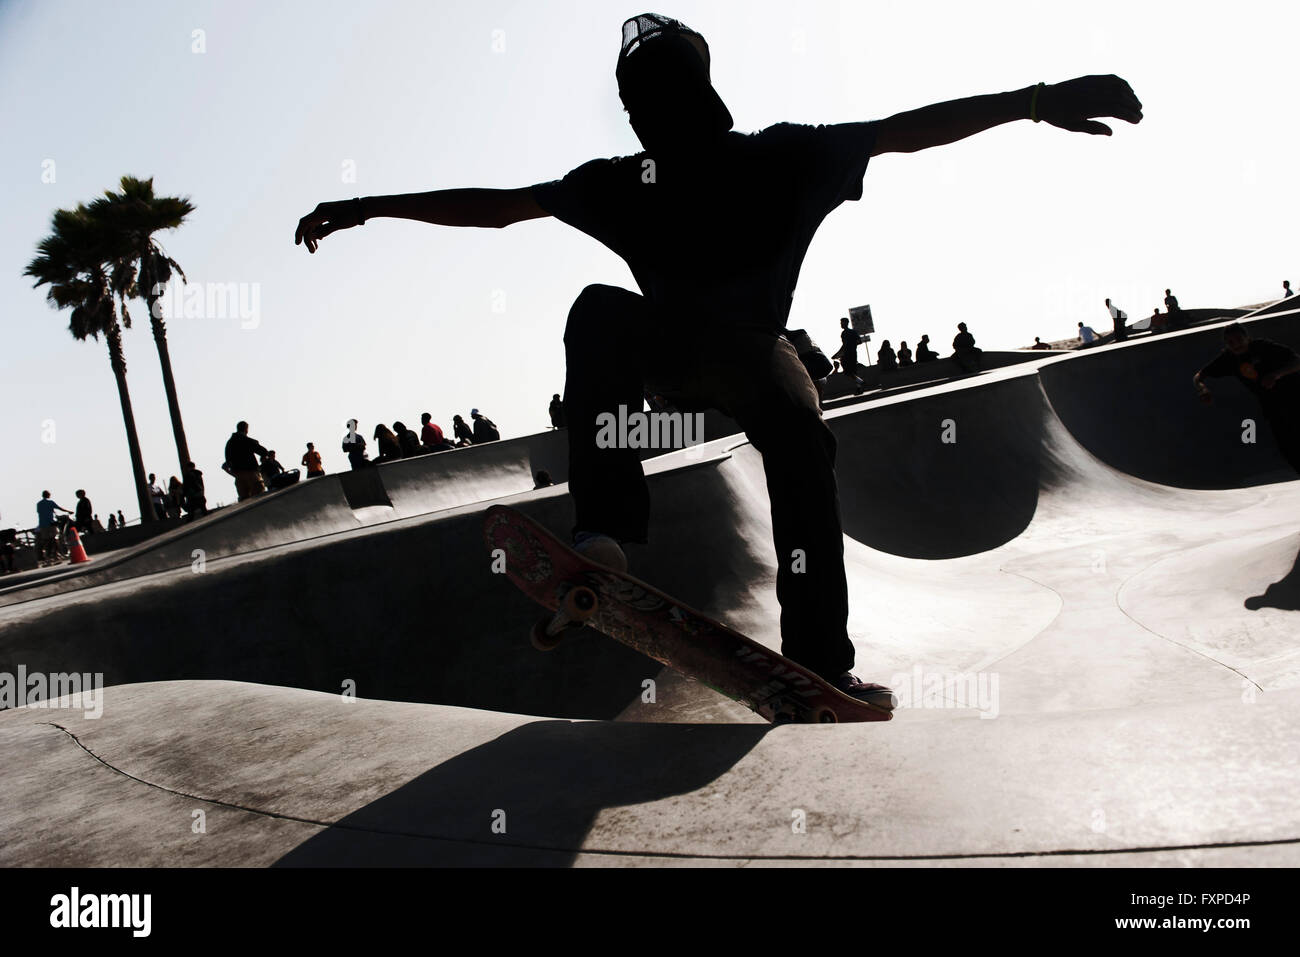 Young man skateboarding in skate park - Stock Image